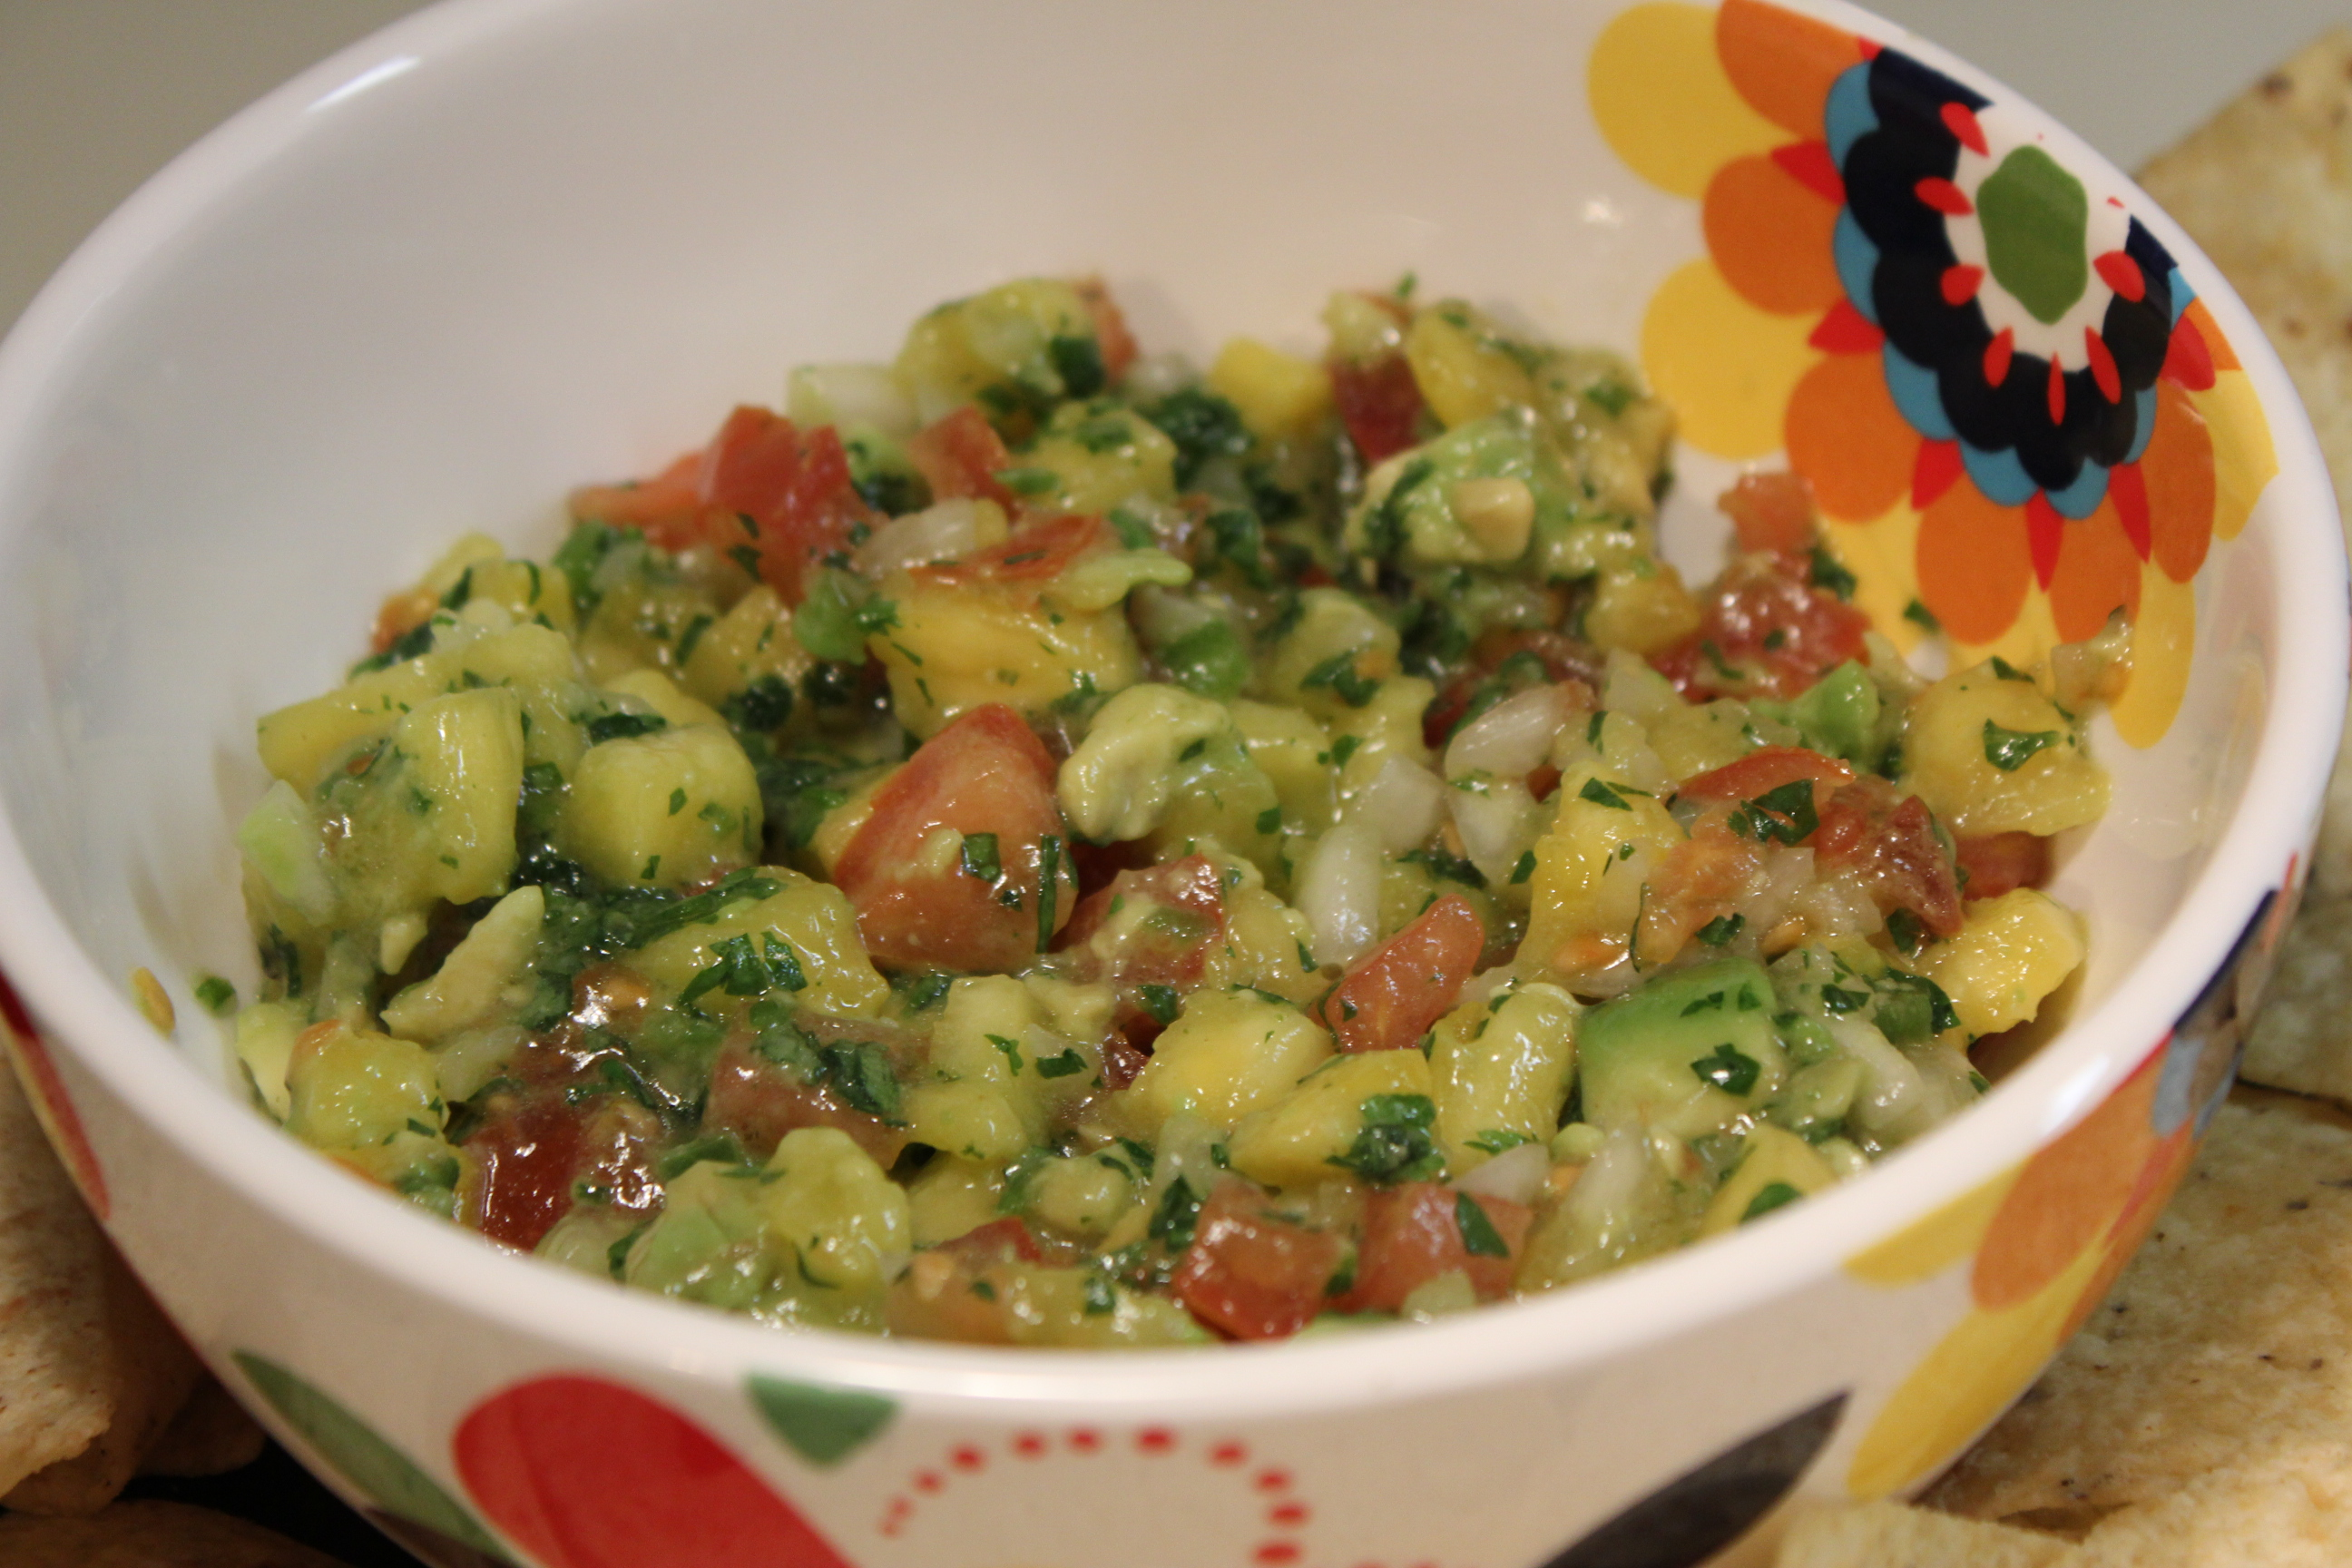 Kel's Pineapple Tomato Salsa with Avocado | Kel's Cafe of All Things ...